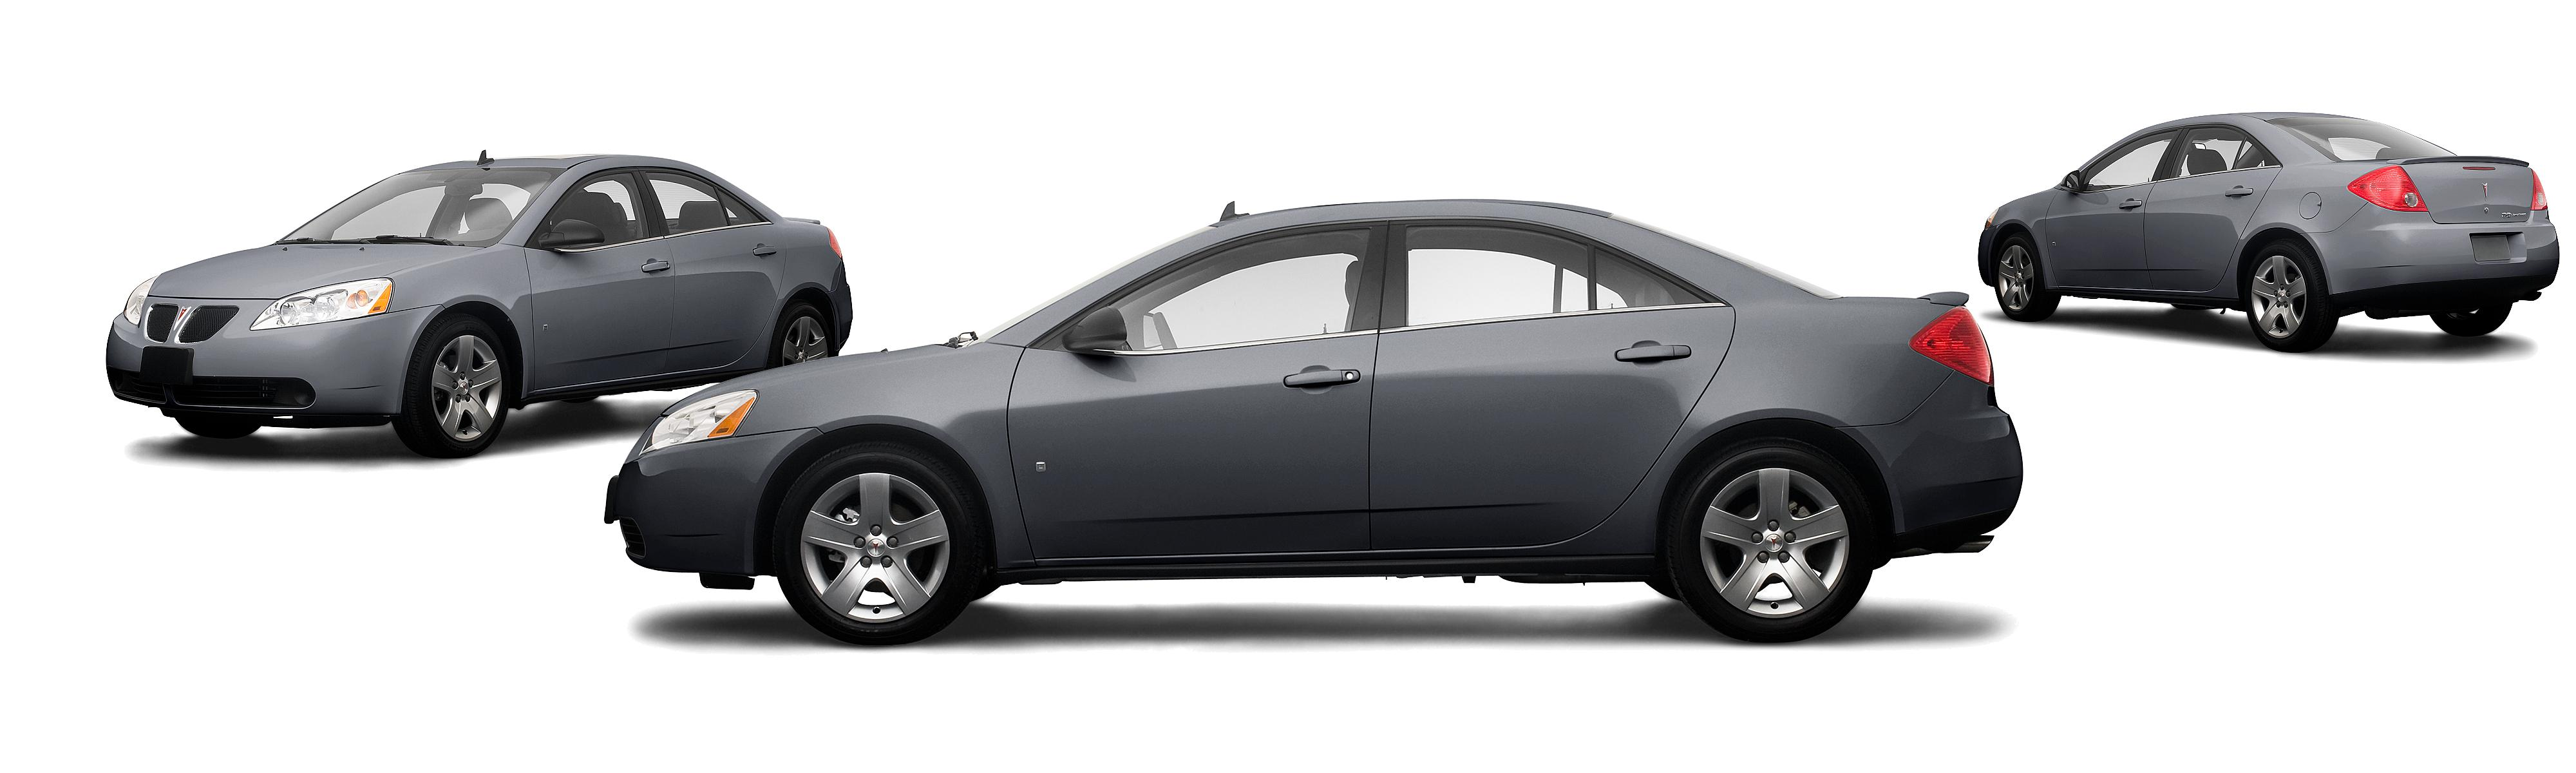 2009 pontiac g6 gxp 4dr sedan w 1sb research groovecar 2005 Pontiac G6 Paint Colors